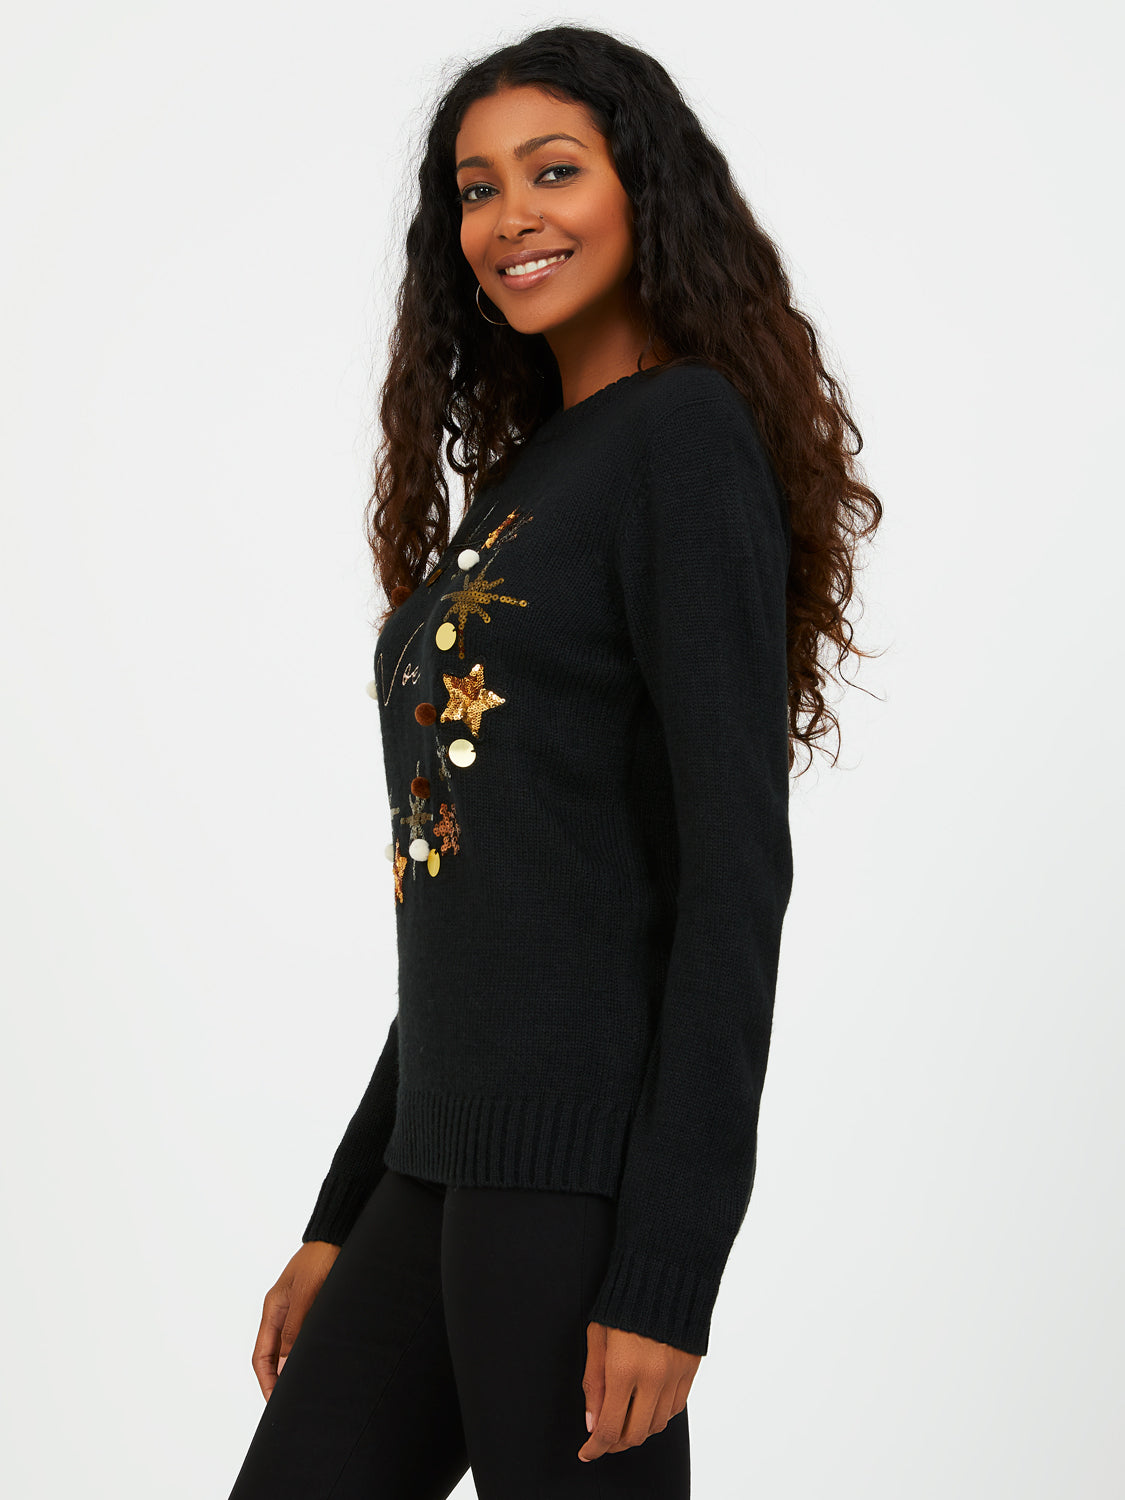 Crew Neck Noel & Xmas Wreath Print Sweater